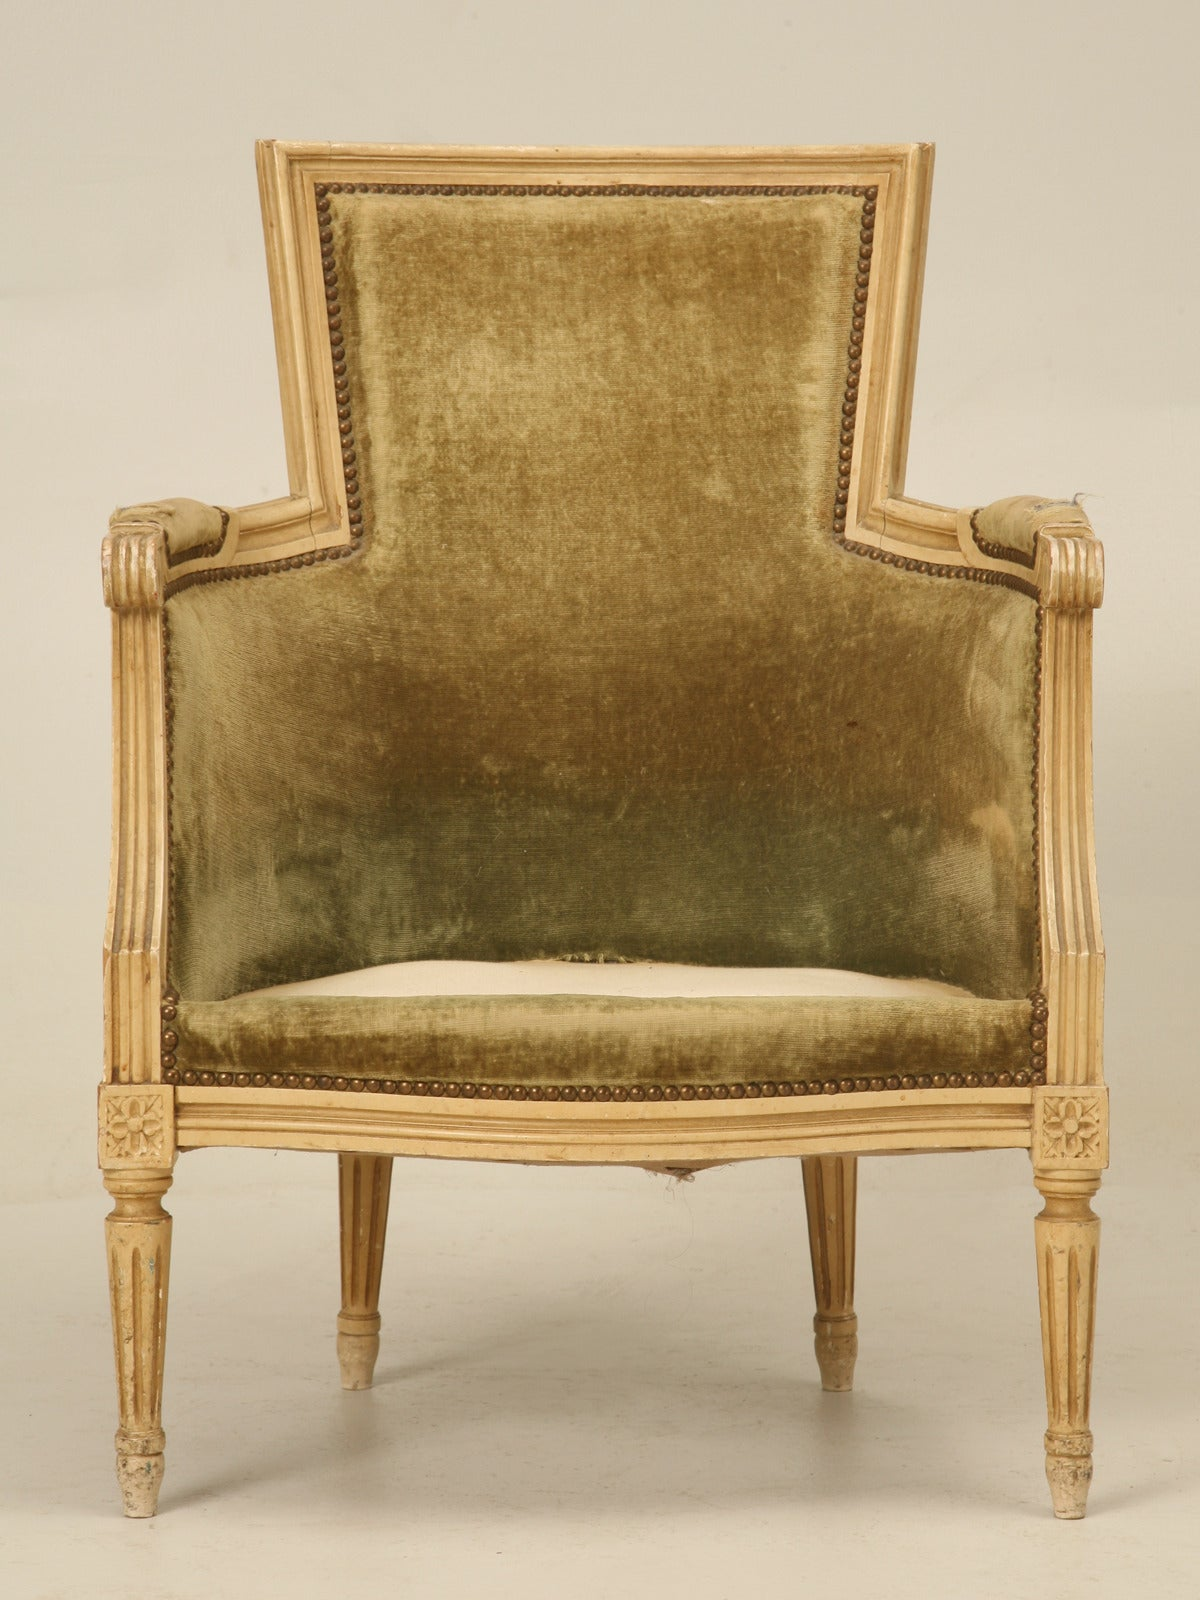 Louis XVI Style Bergere Chairs in Original Paint For Sale 3